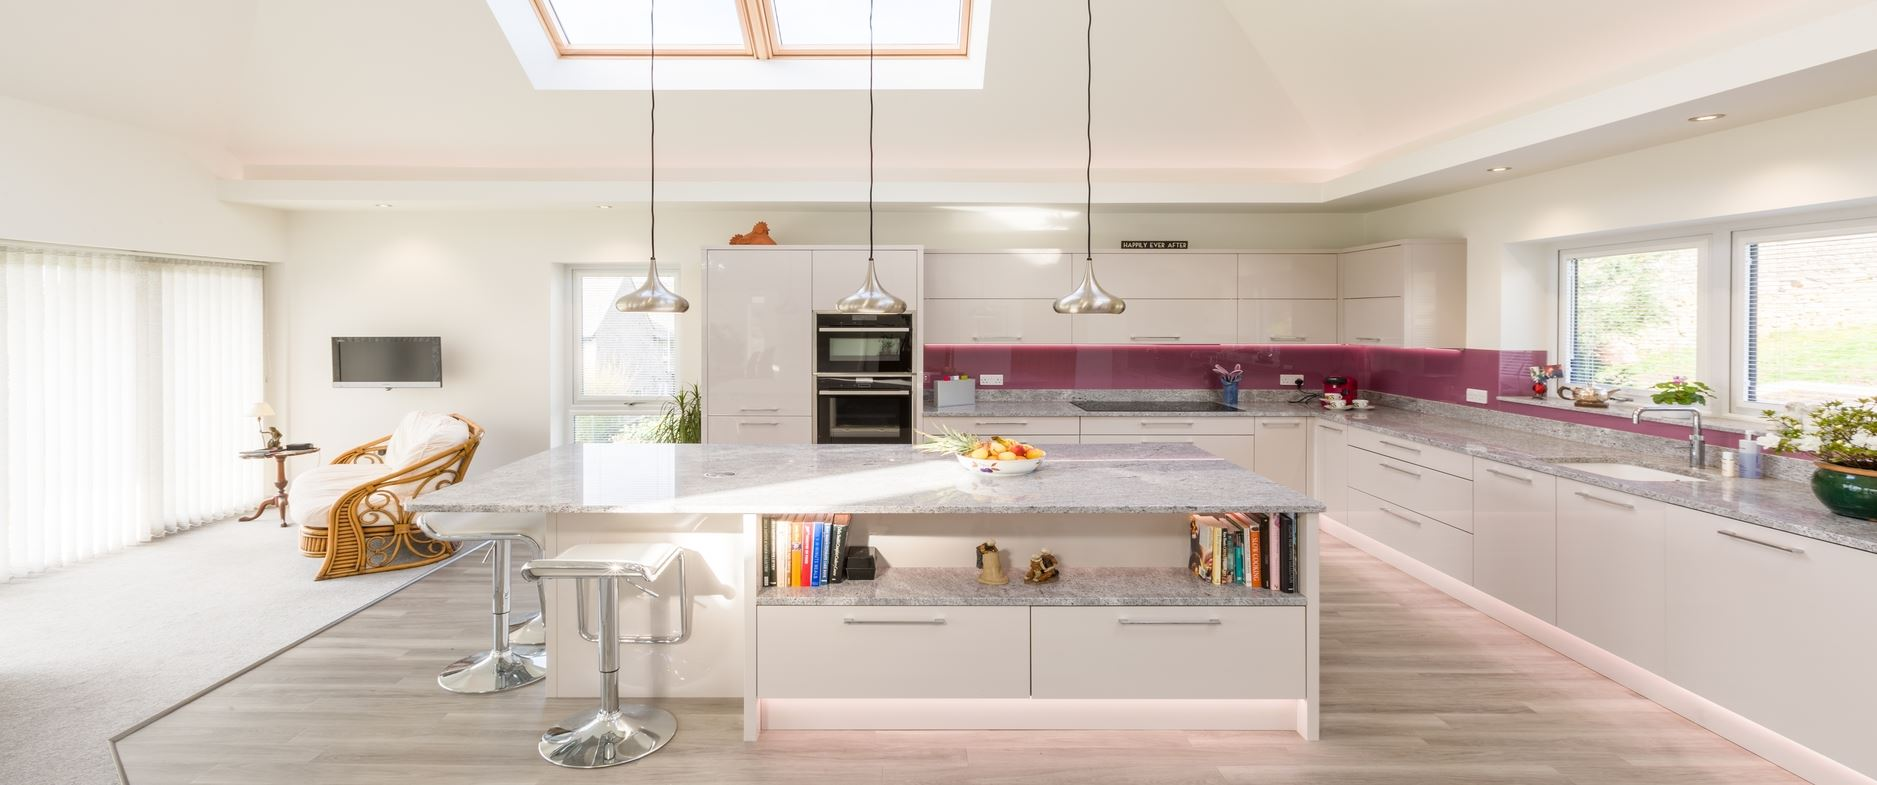 Best Looking Kitchens